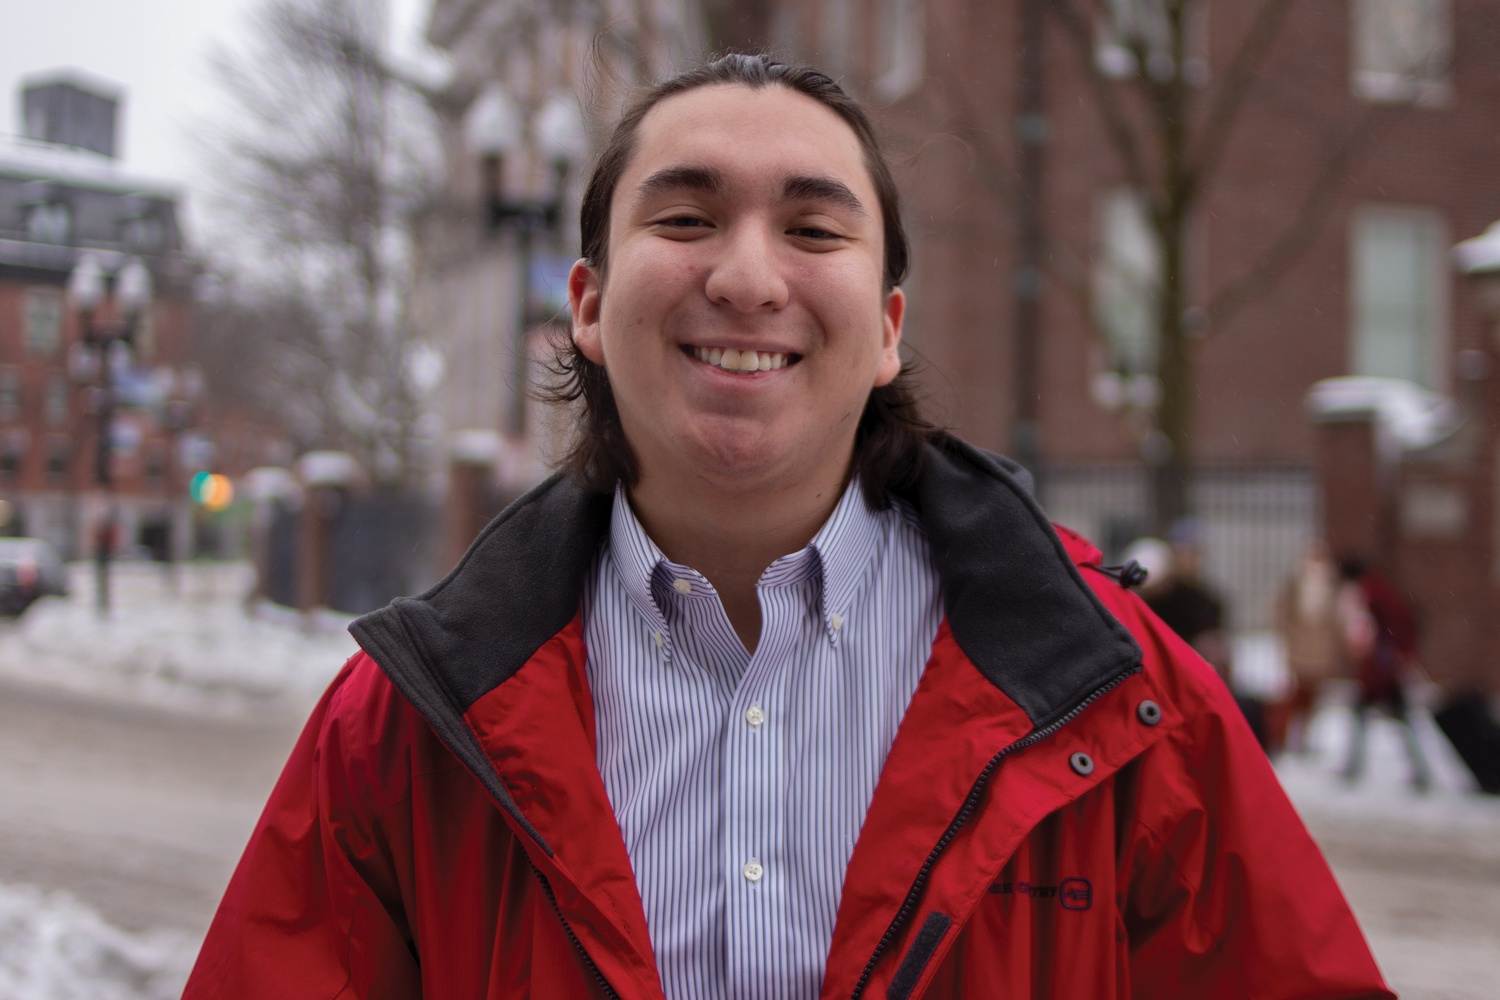 Eli J. Langley '20 received a language credit this semester for his work on Koasati — a tribal language he has worked to preserve.